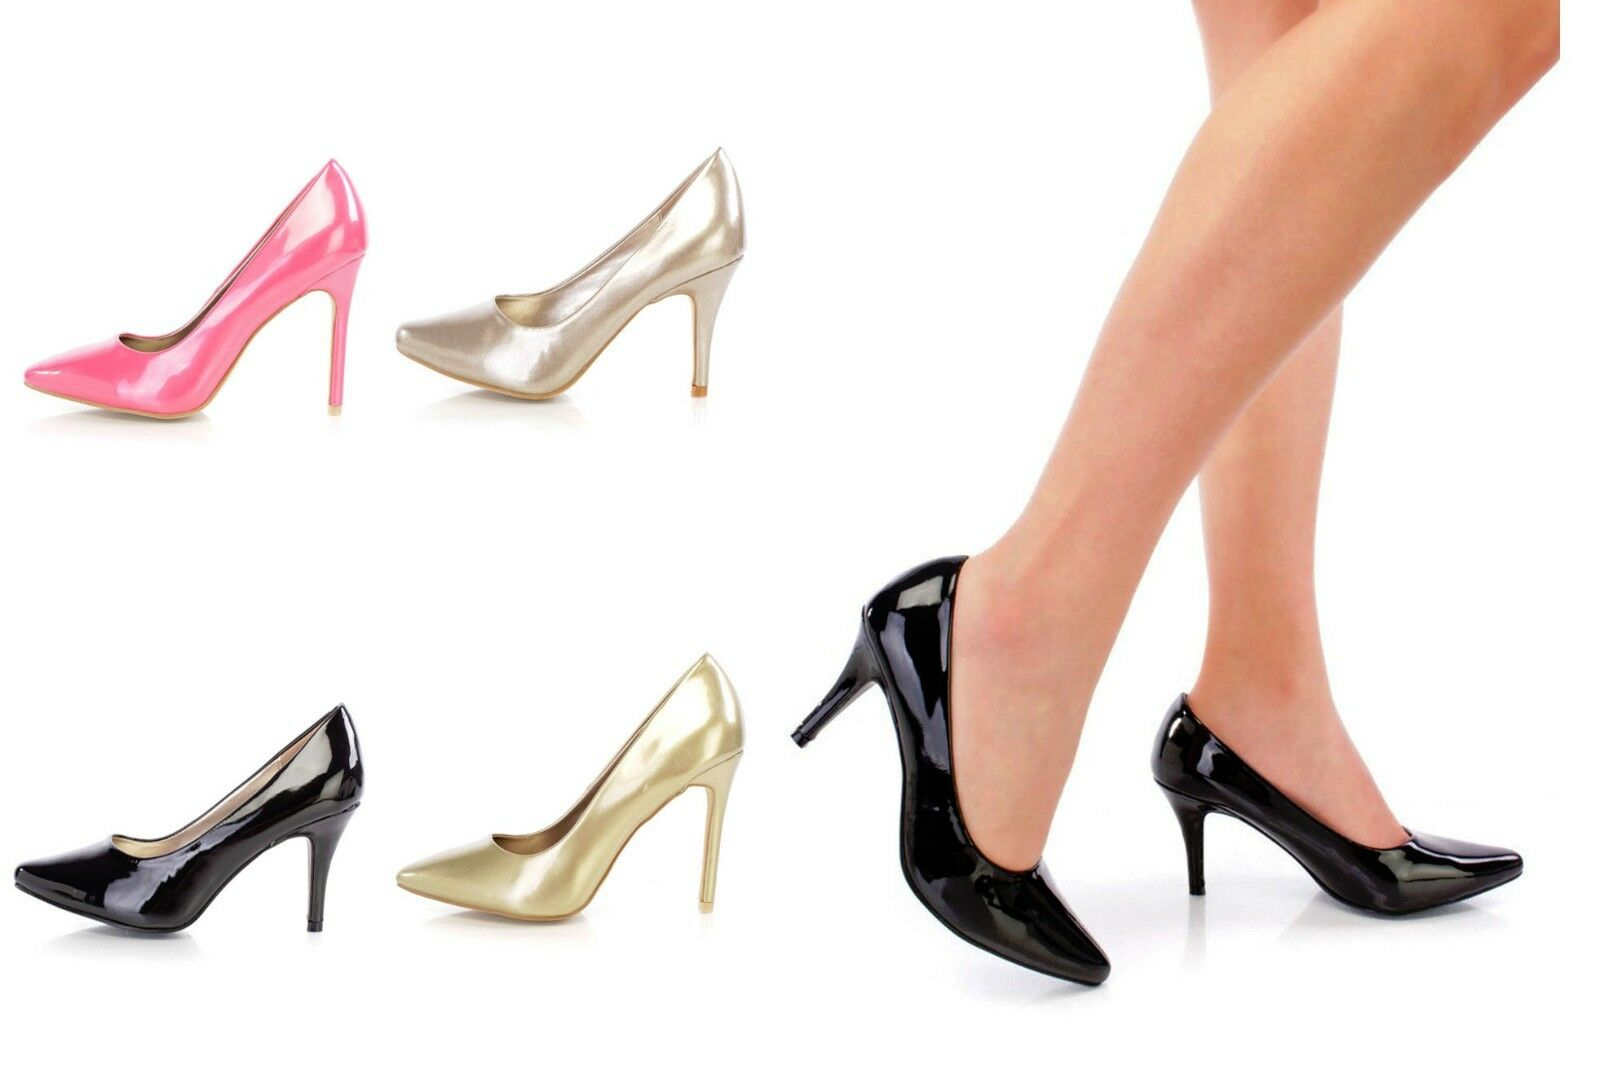 Lot Pointed Toe Pumps High Heels Faux Leather Patent Single Sole Faux Leather